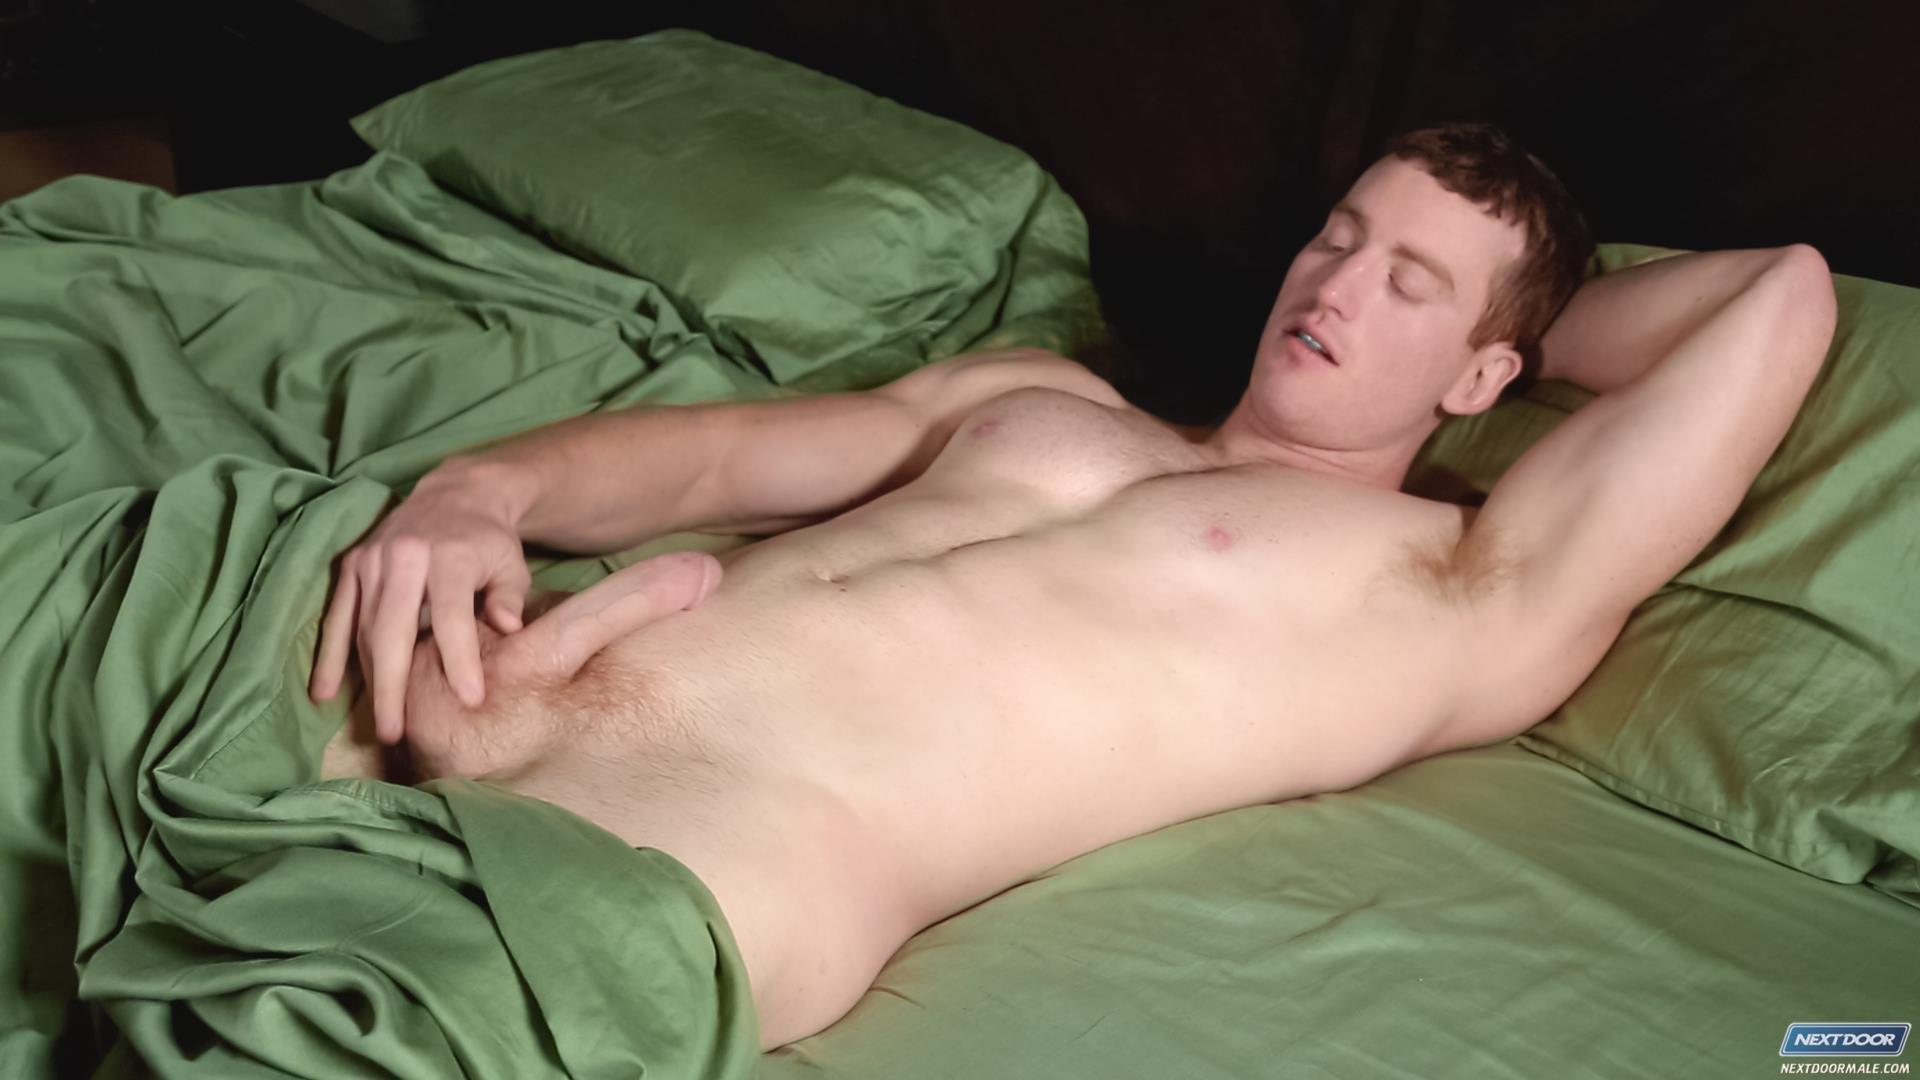 Next-Door-Male-Stryker-Texas-Redhead-Jerking-His-Cock-Amateur-Gay-Porn-05 Texas Redneck Redhead Country Boy Jerking His Ginger Cock